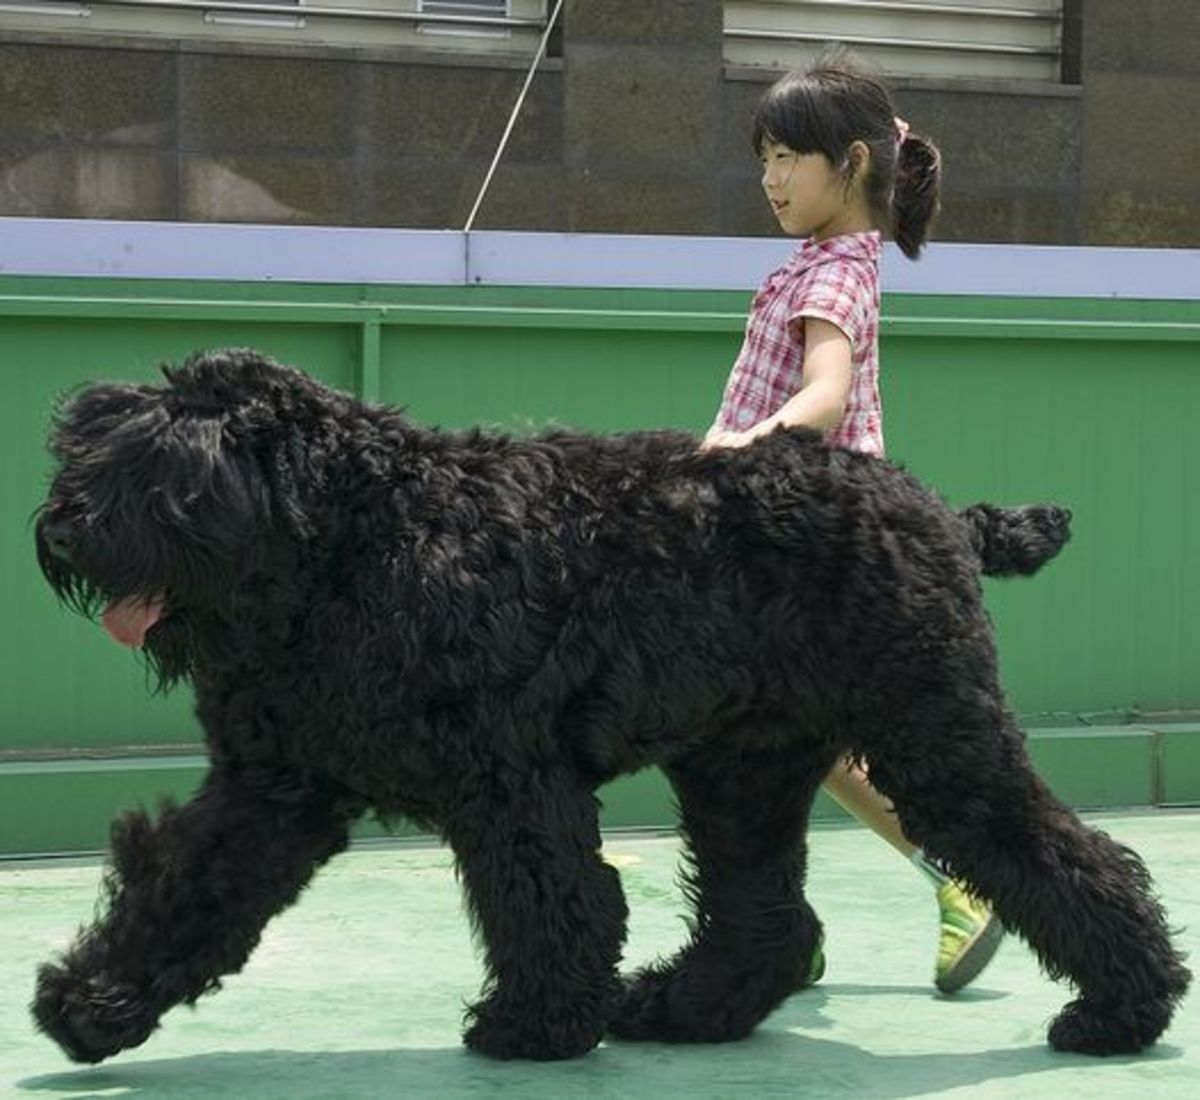 The Black Russian Terrier was developed to be tall, strong, and a good pet.